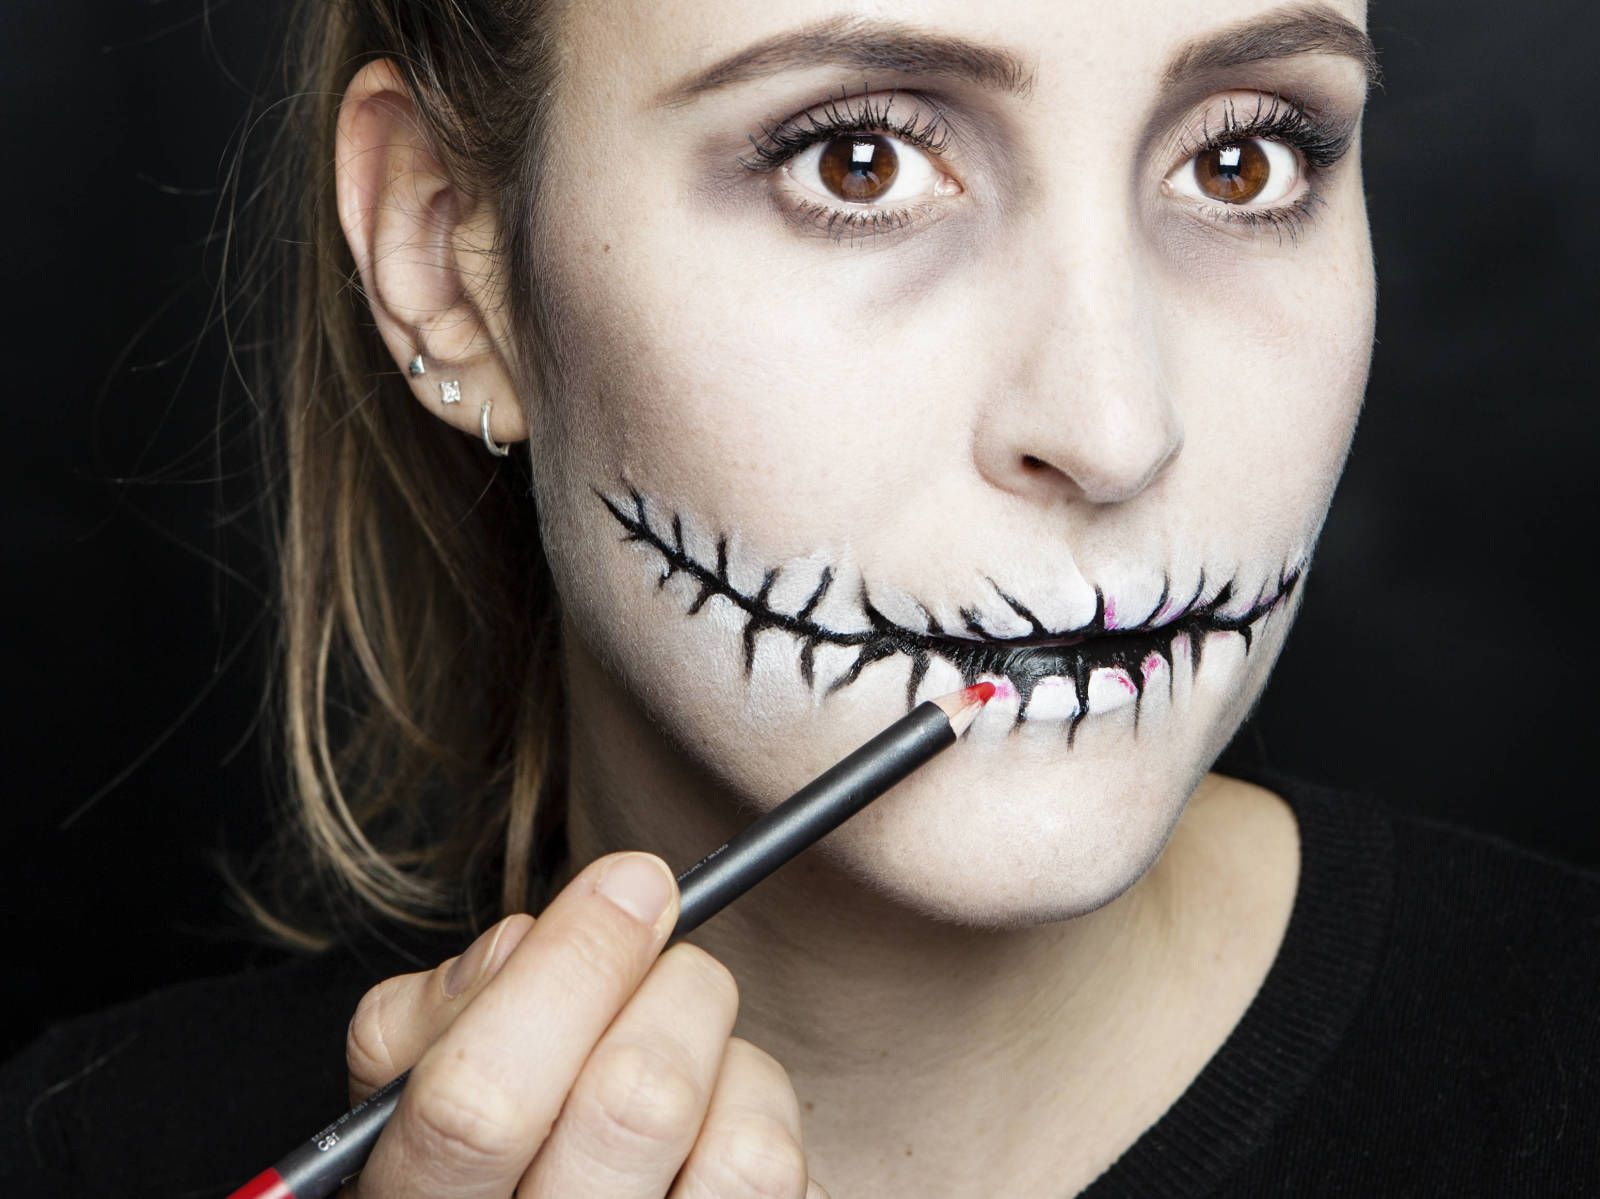 Halloween how to stitched mouth makeup scary halloween makeup halloween makeup how to do scary makeup beauty tutorials fashion hair beauty sex and relationships cosmopolitan uk baditri Gallery